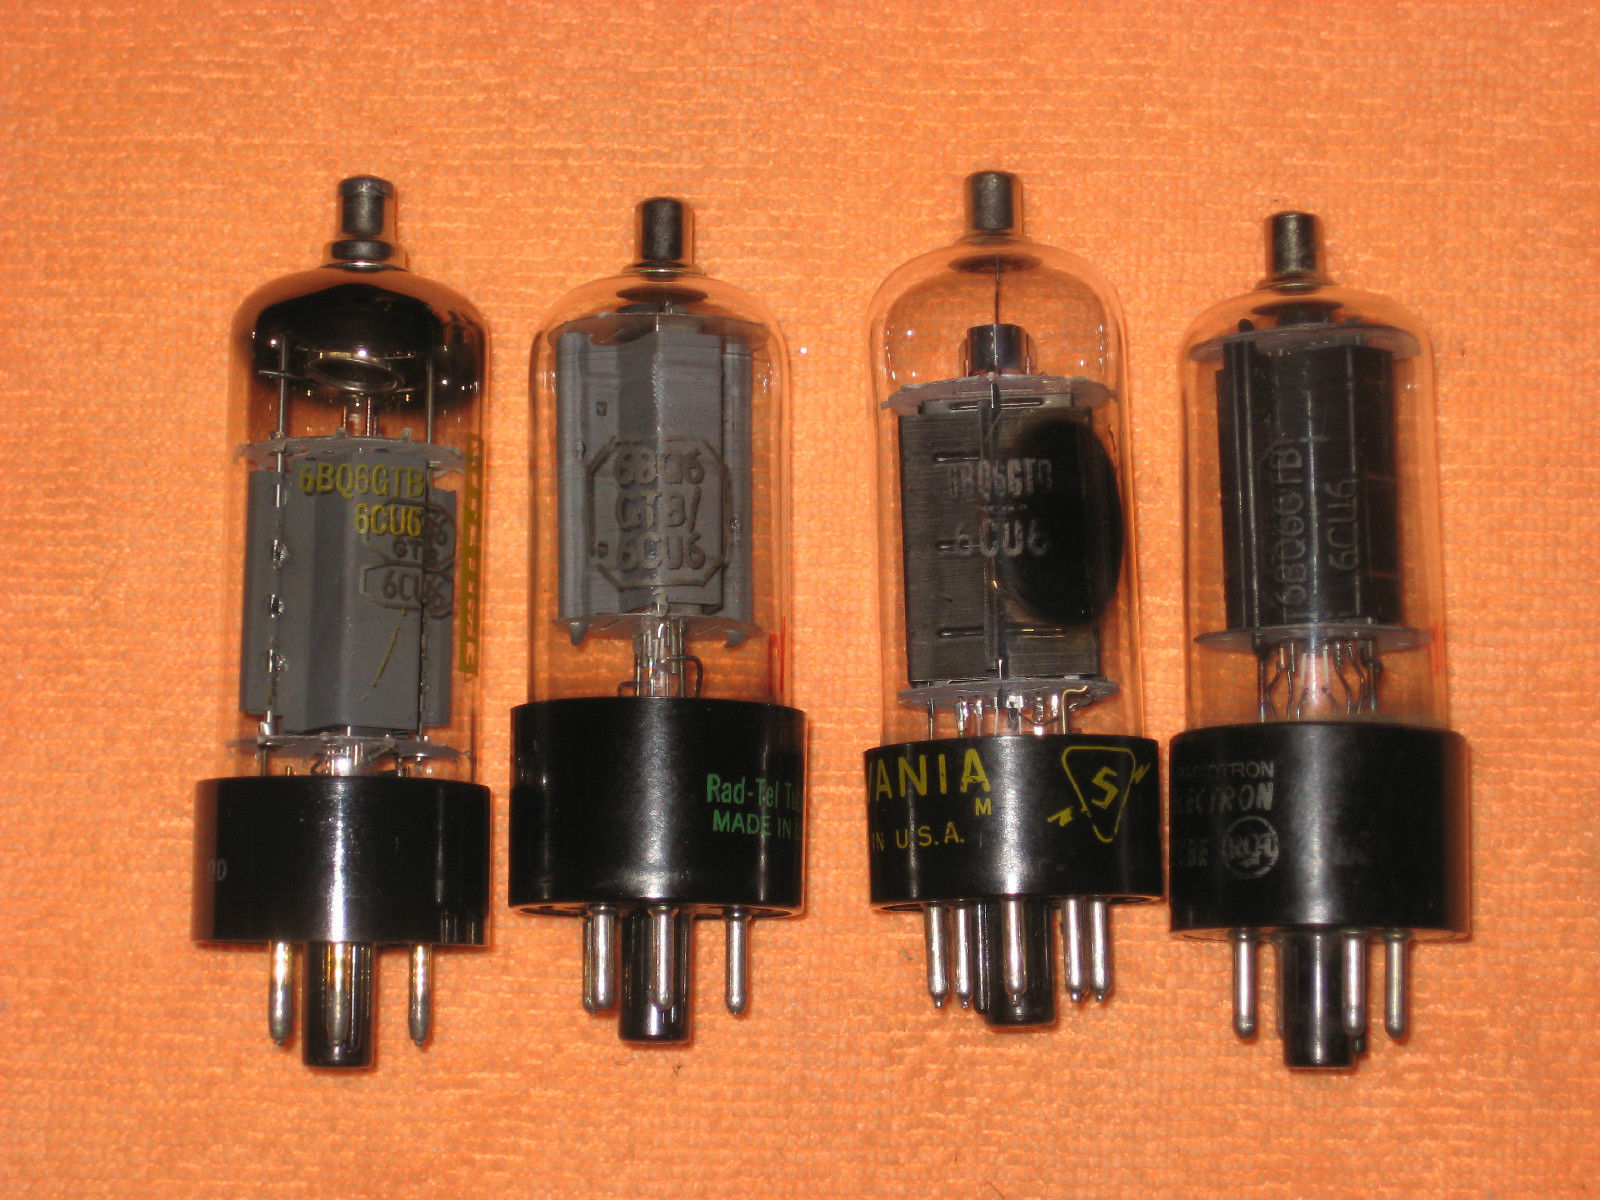 Vintage Radio Vacuum Tube (one): 6BQ6 6BQ6GTB / 6CU6 - Tested Good